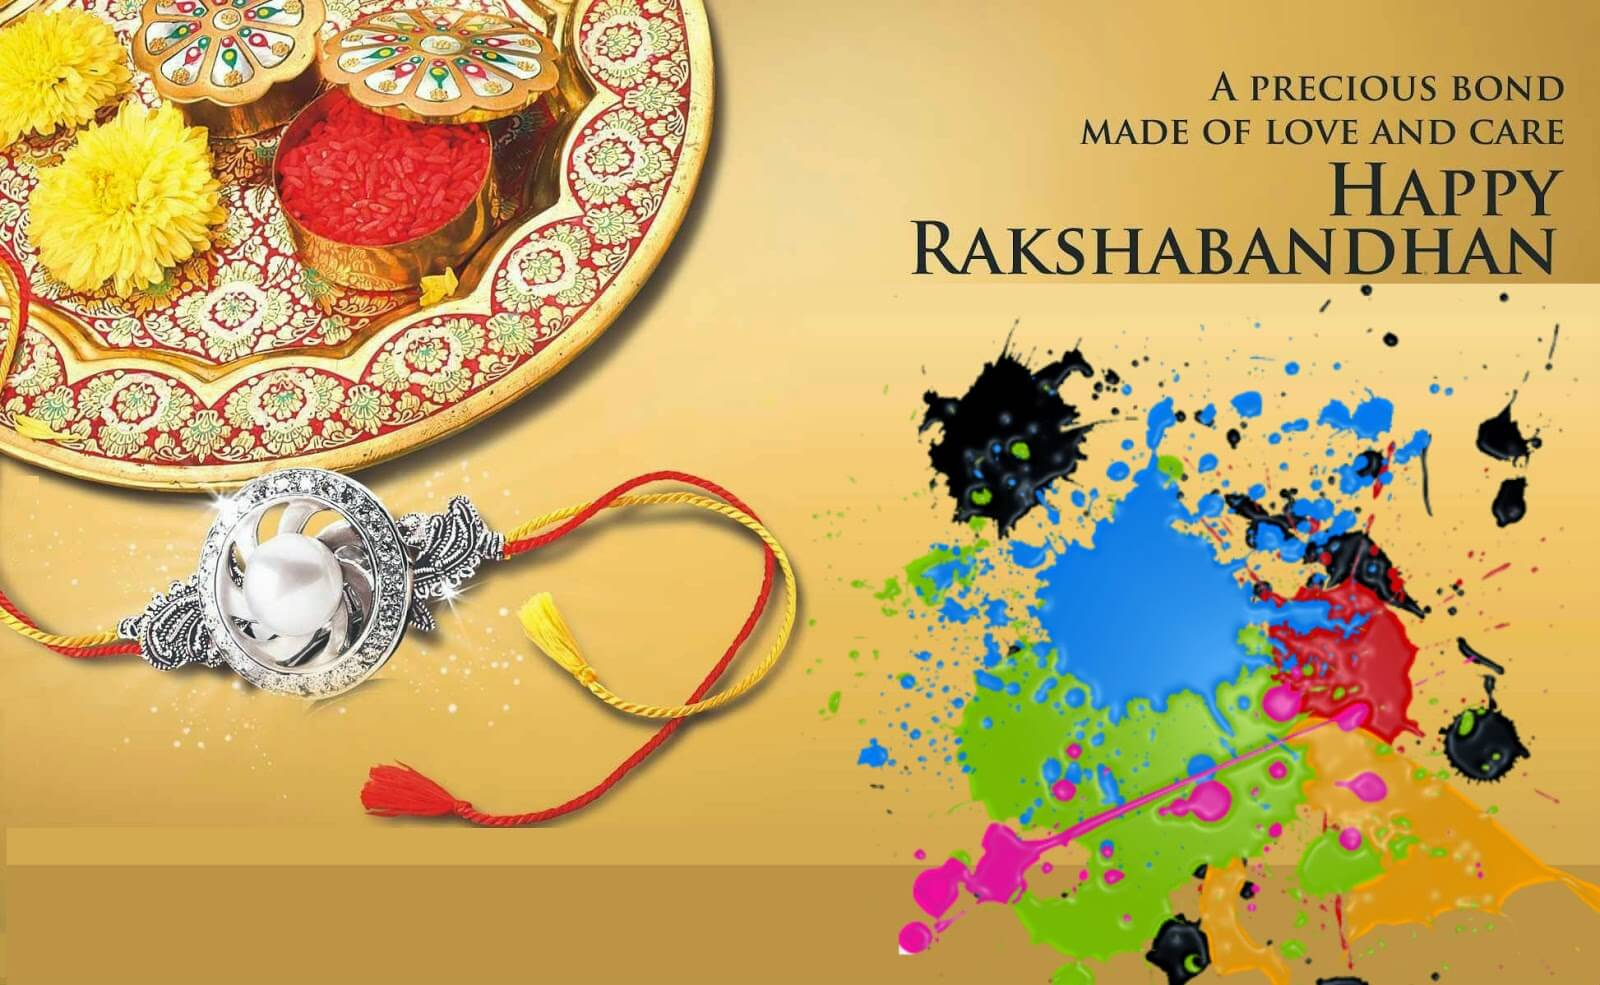 happy Raksha Bandhan wishes images wallpapers in english